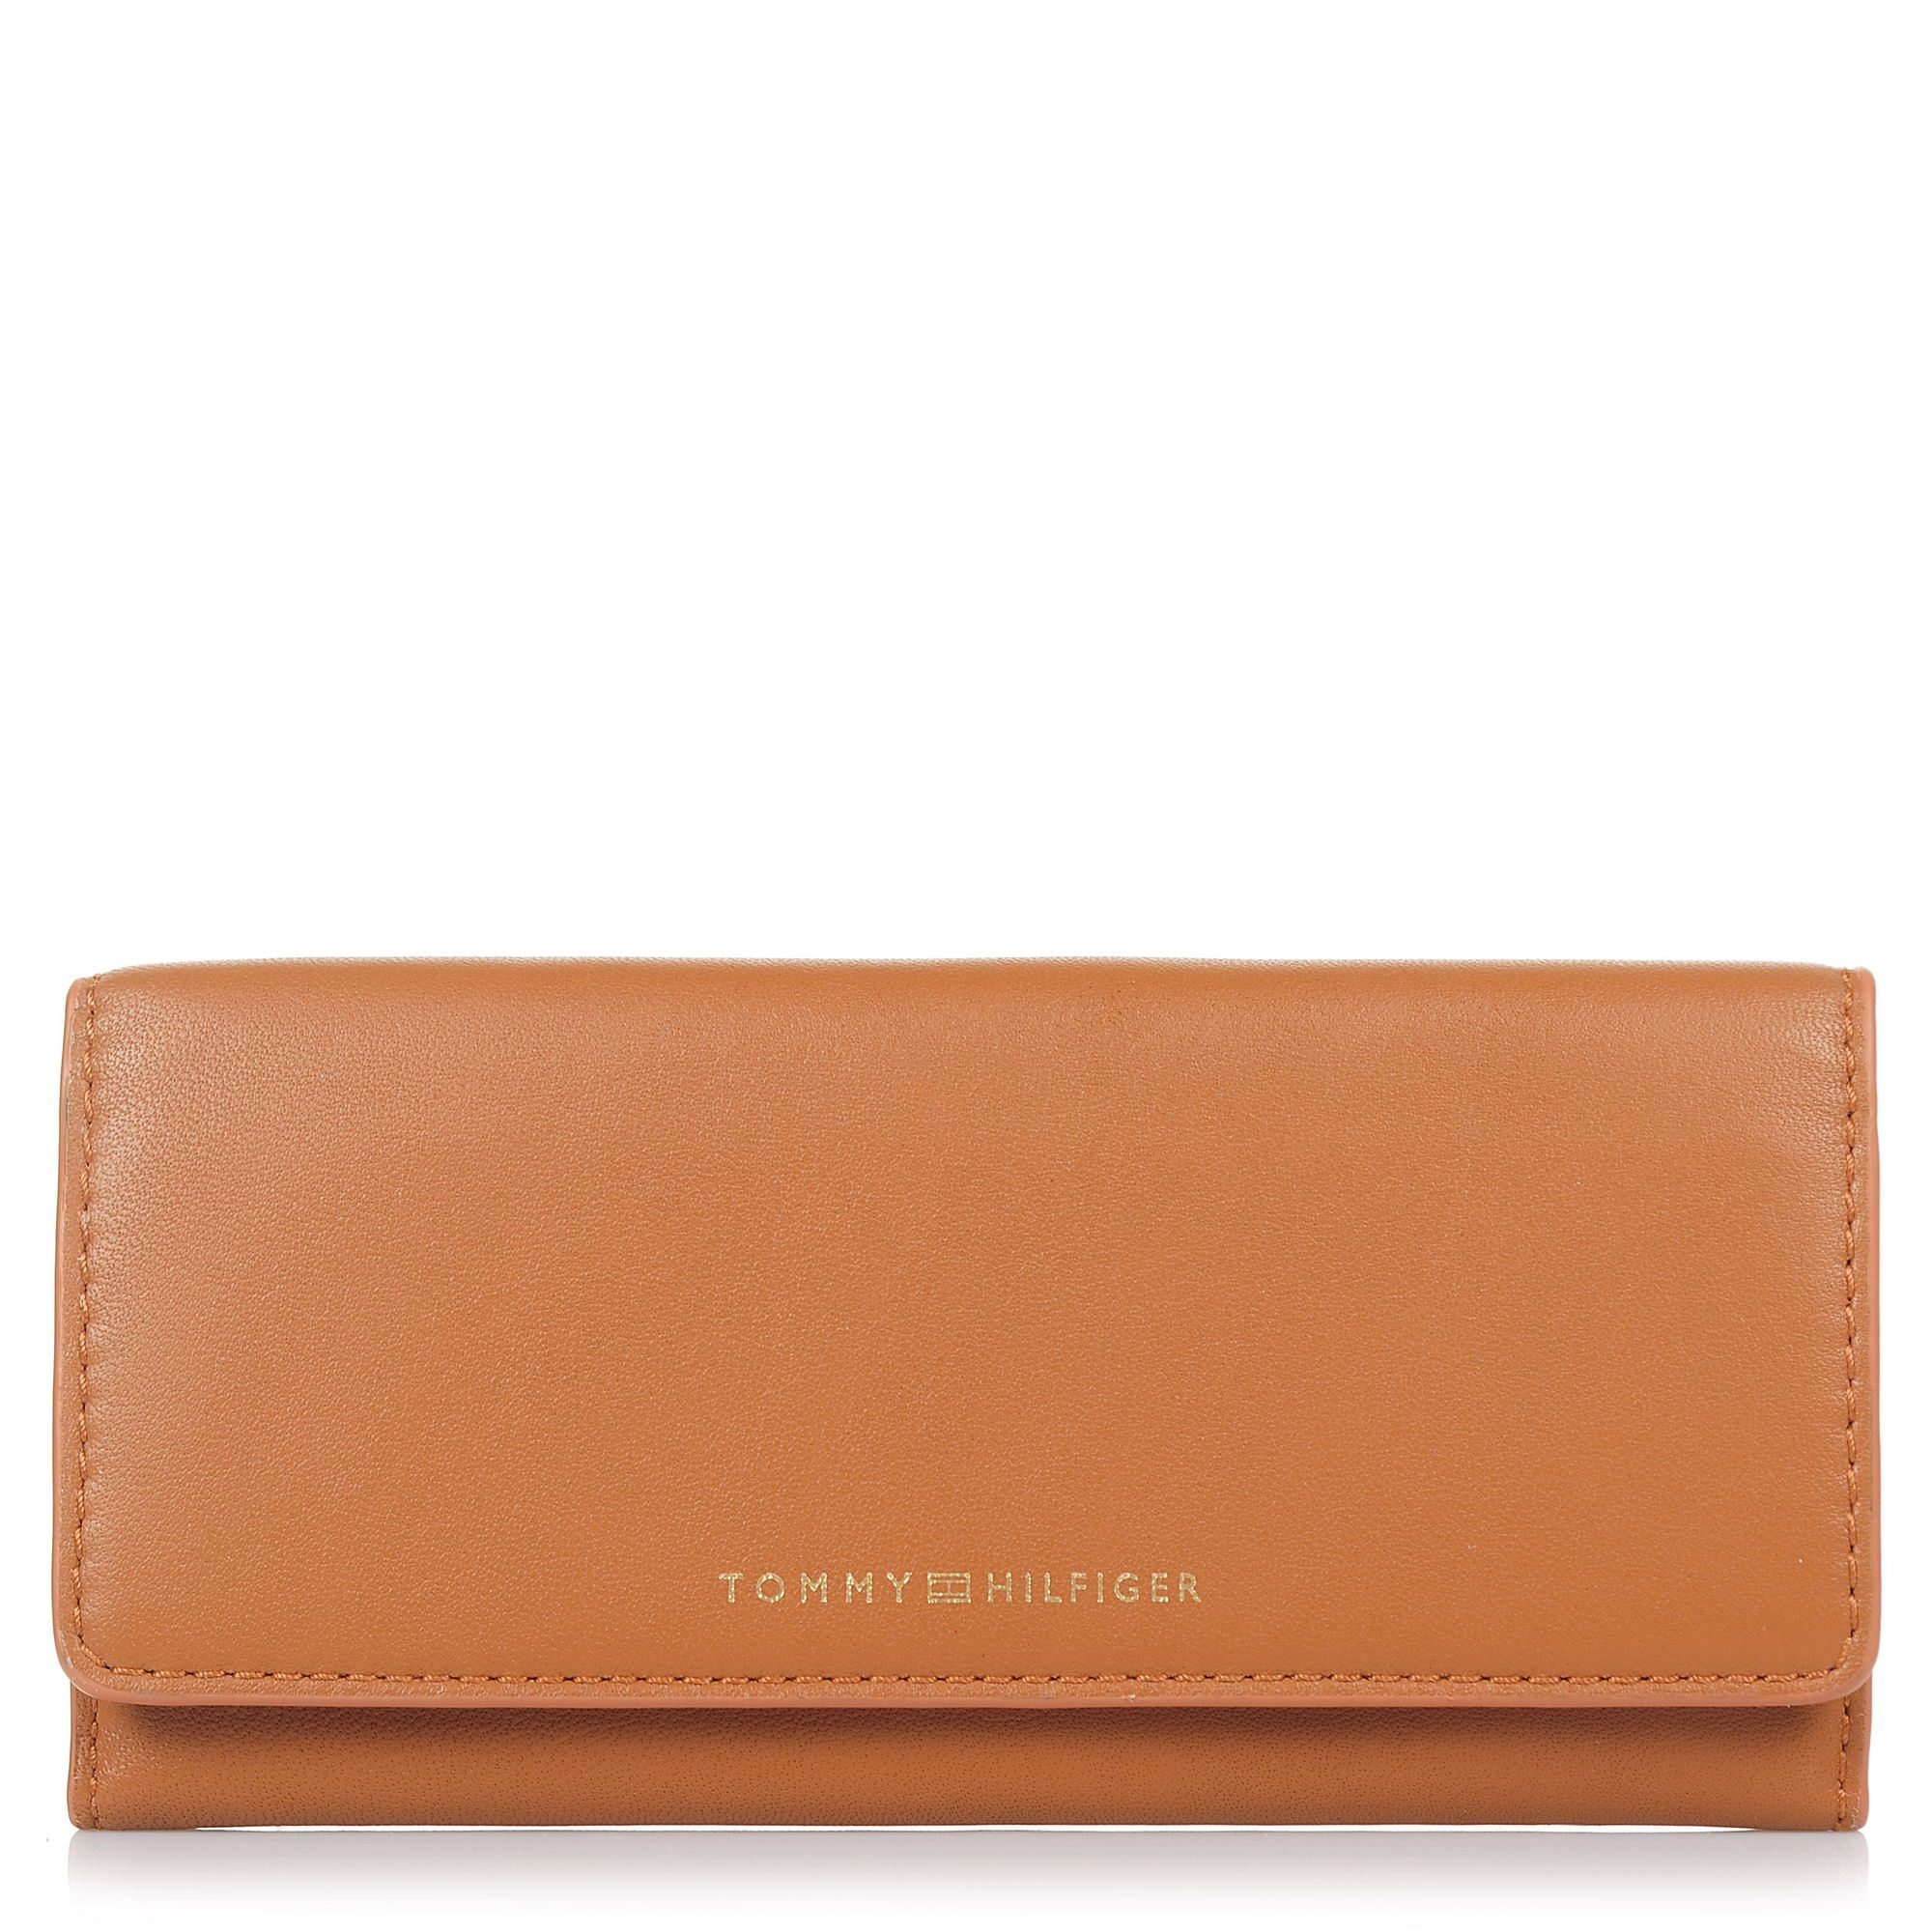 Δερμάτινο Πορτοφόλι Tommy Hilfiger Smooth Leather Ew Slim Flap Wallet AW0ΑW05139